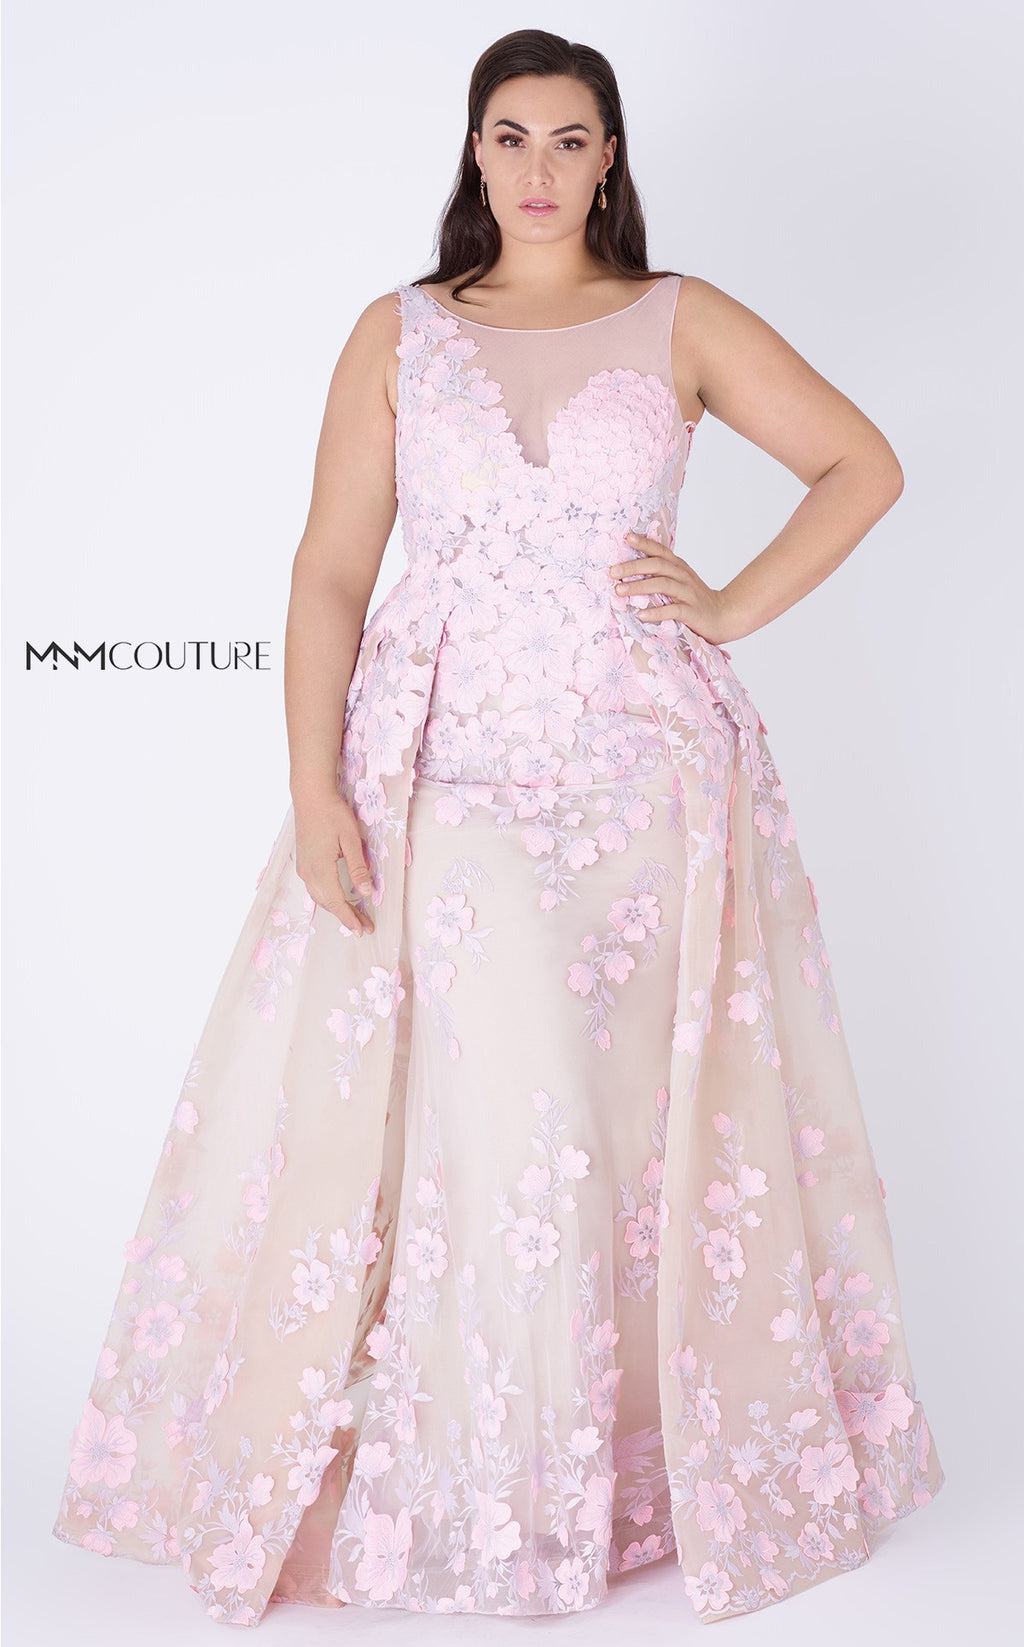 MNM Couture K3558 A-Line Evening Dress - CYC Boutique